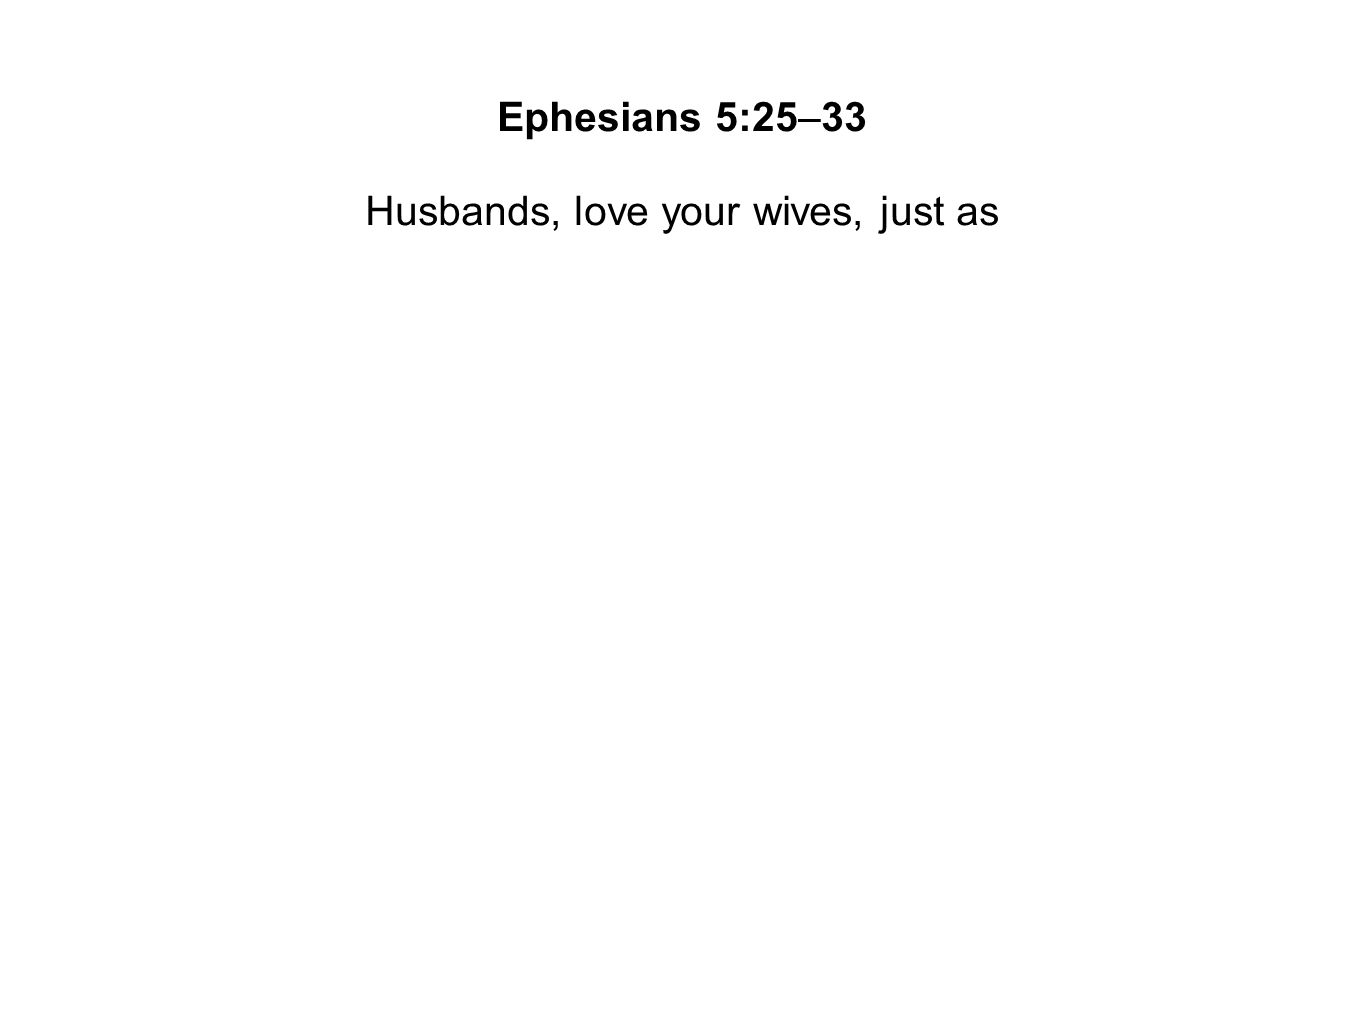 Husbands, love your wives, just as